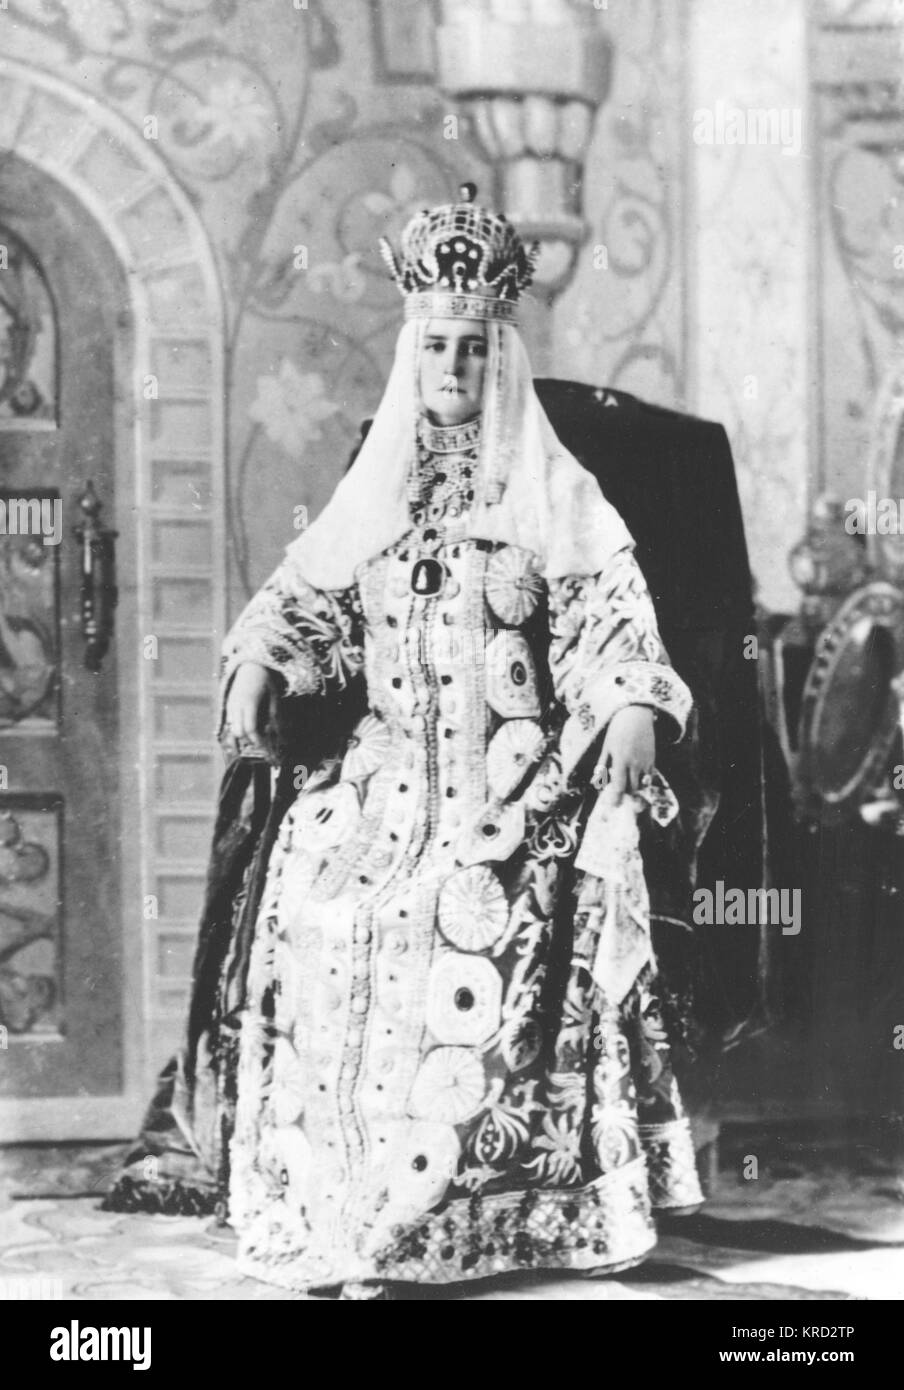 The final Empress of Russia: Alexandra Feodorovna Romanova, here wearing an extravigant traditional Russian costume - Stock Image